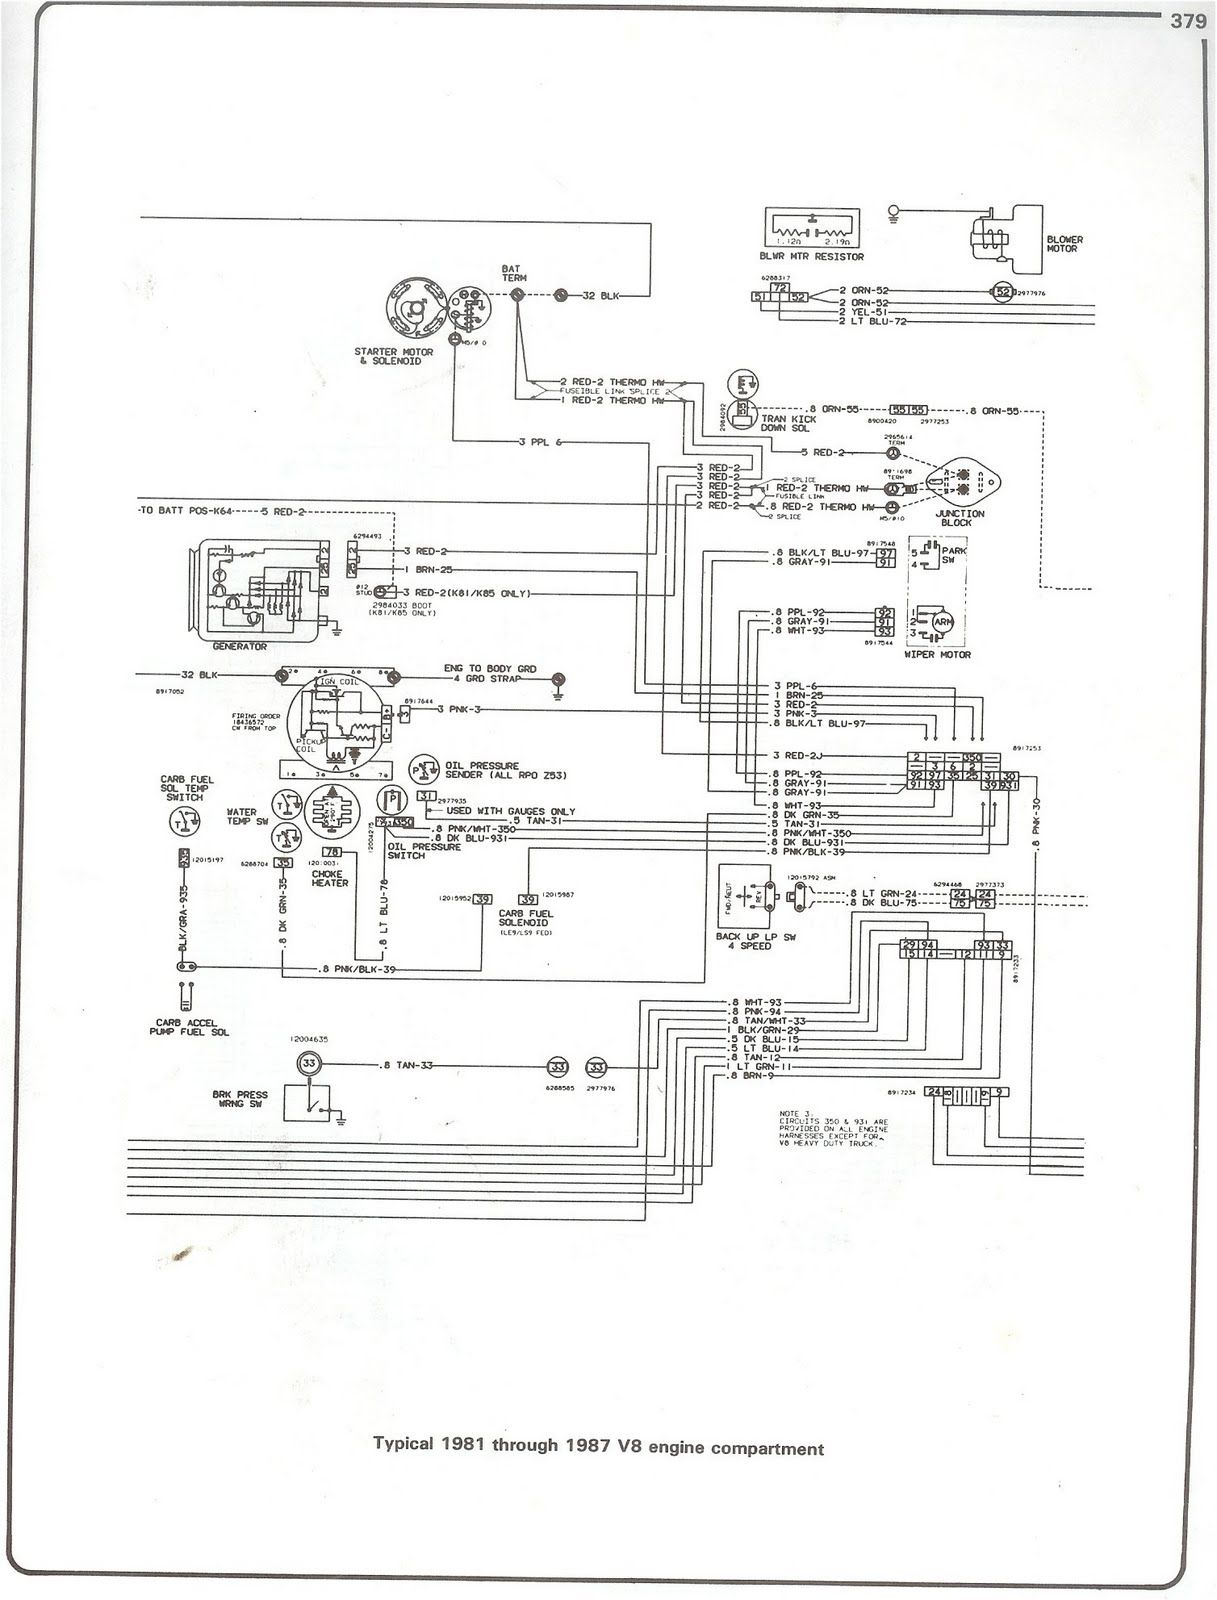 1987 Gmc Wiring Schematics Reinvent Your Diagram Sierra Schematic 87 Chevy Van Rh Mychampagnedaze Com S15 Jimmy